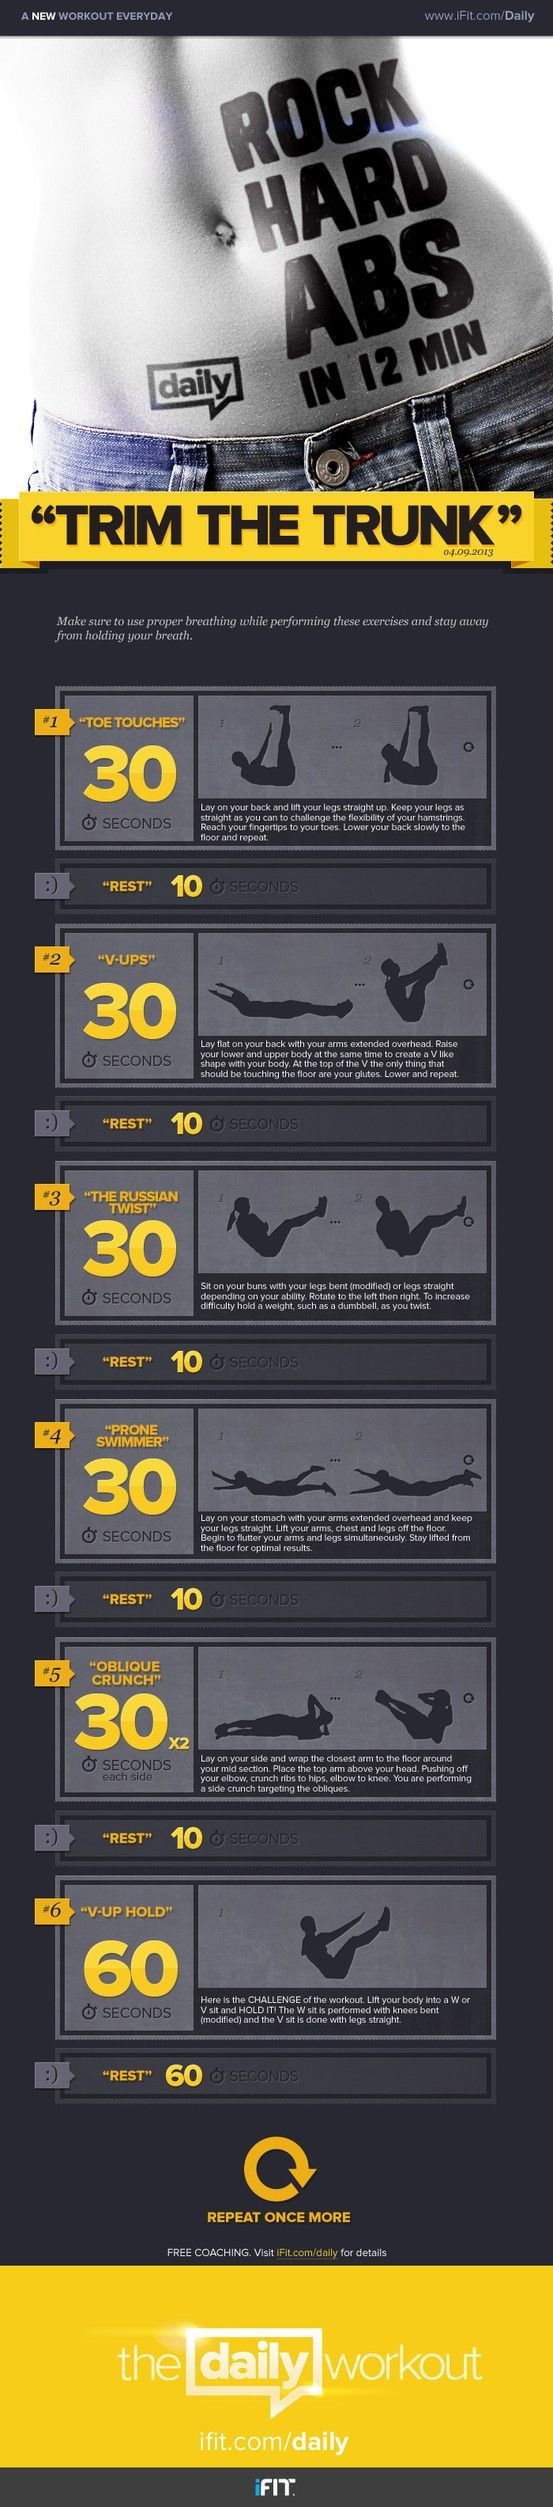 Abs in 12 minutes